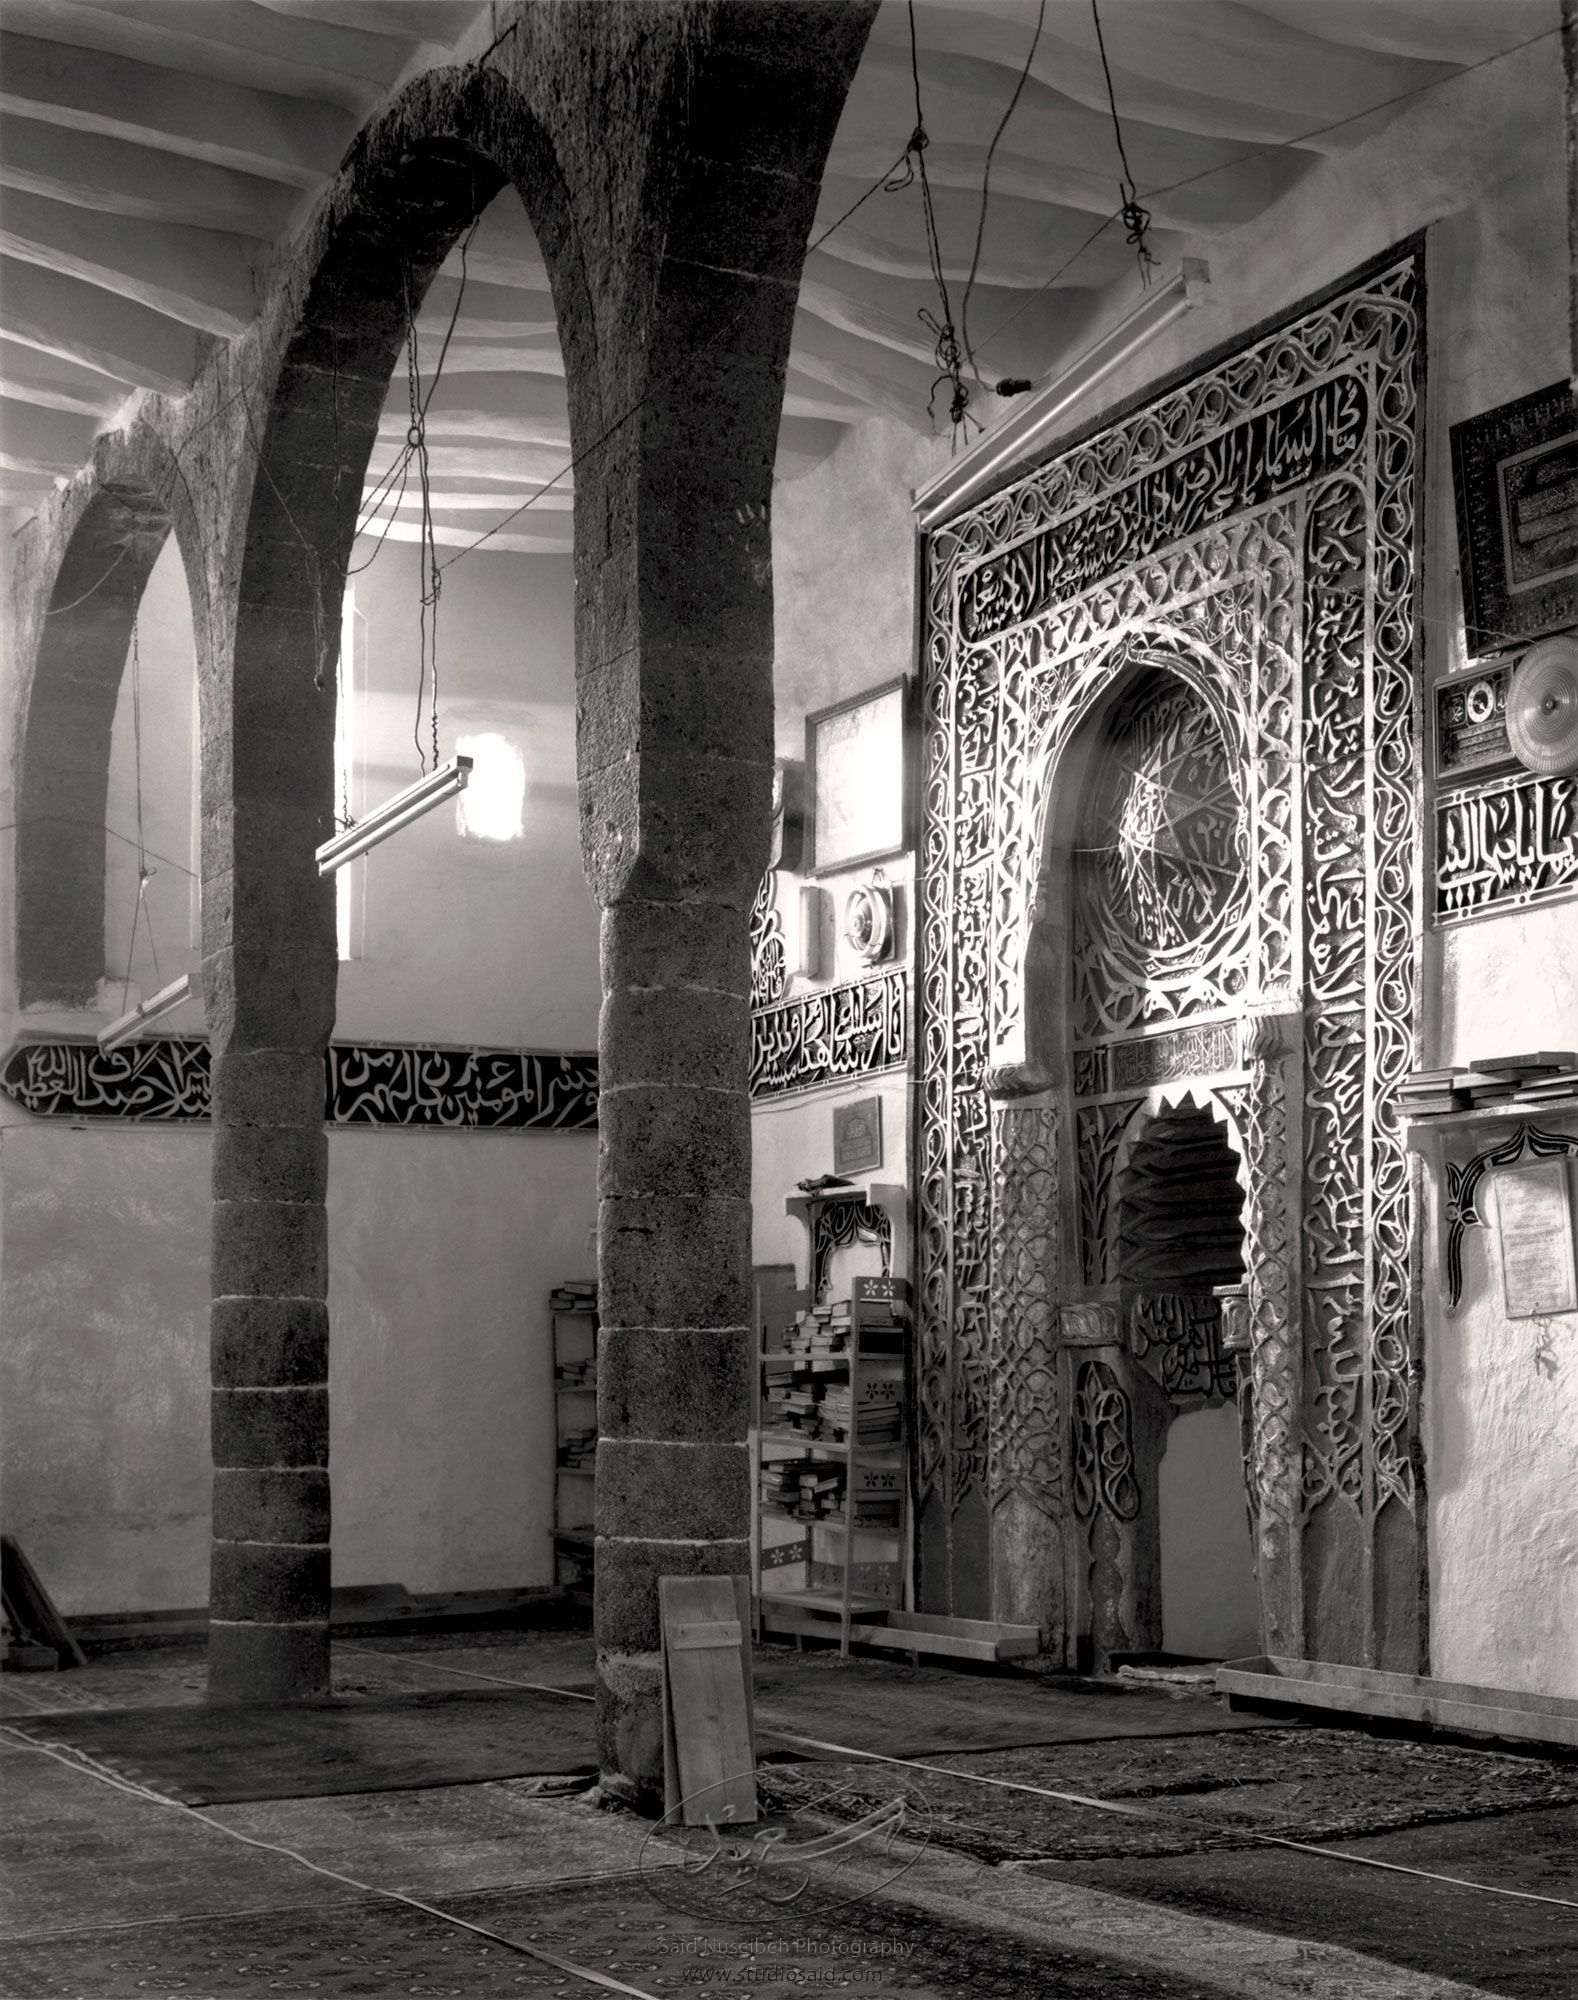 A small neighborhood mosque in the old walled city of Sana'a.